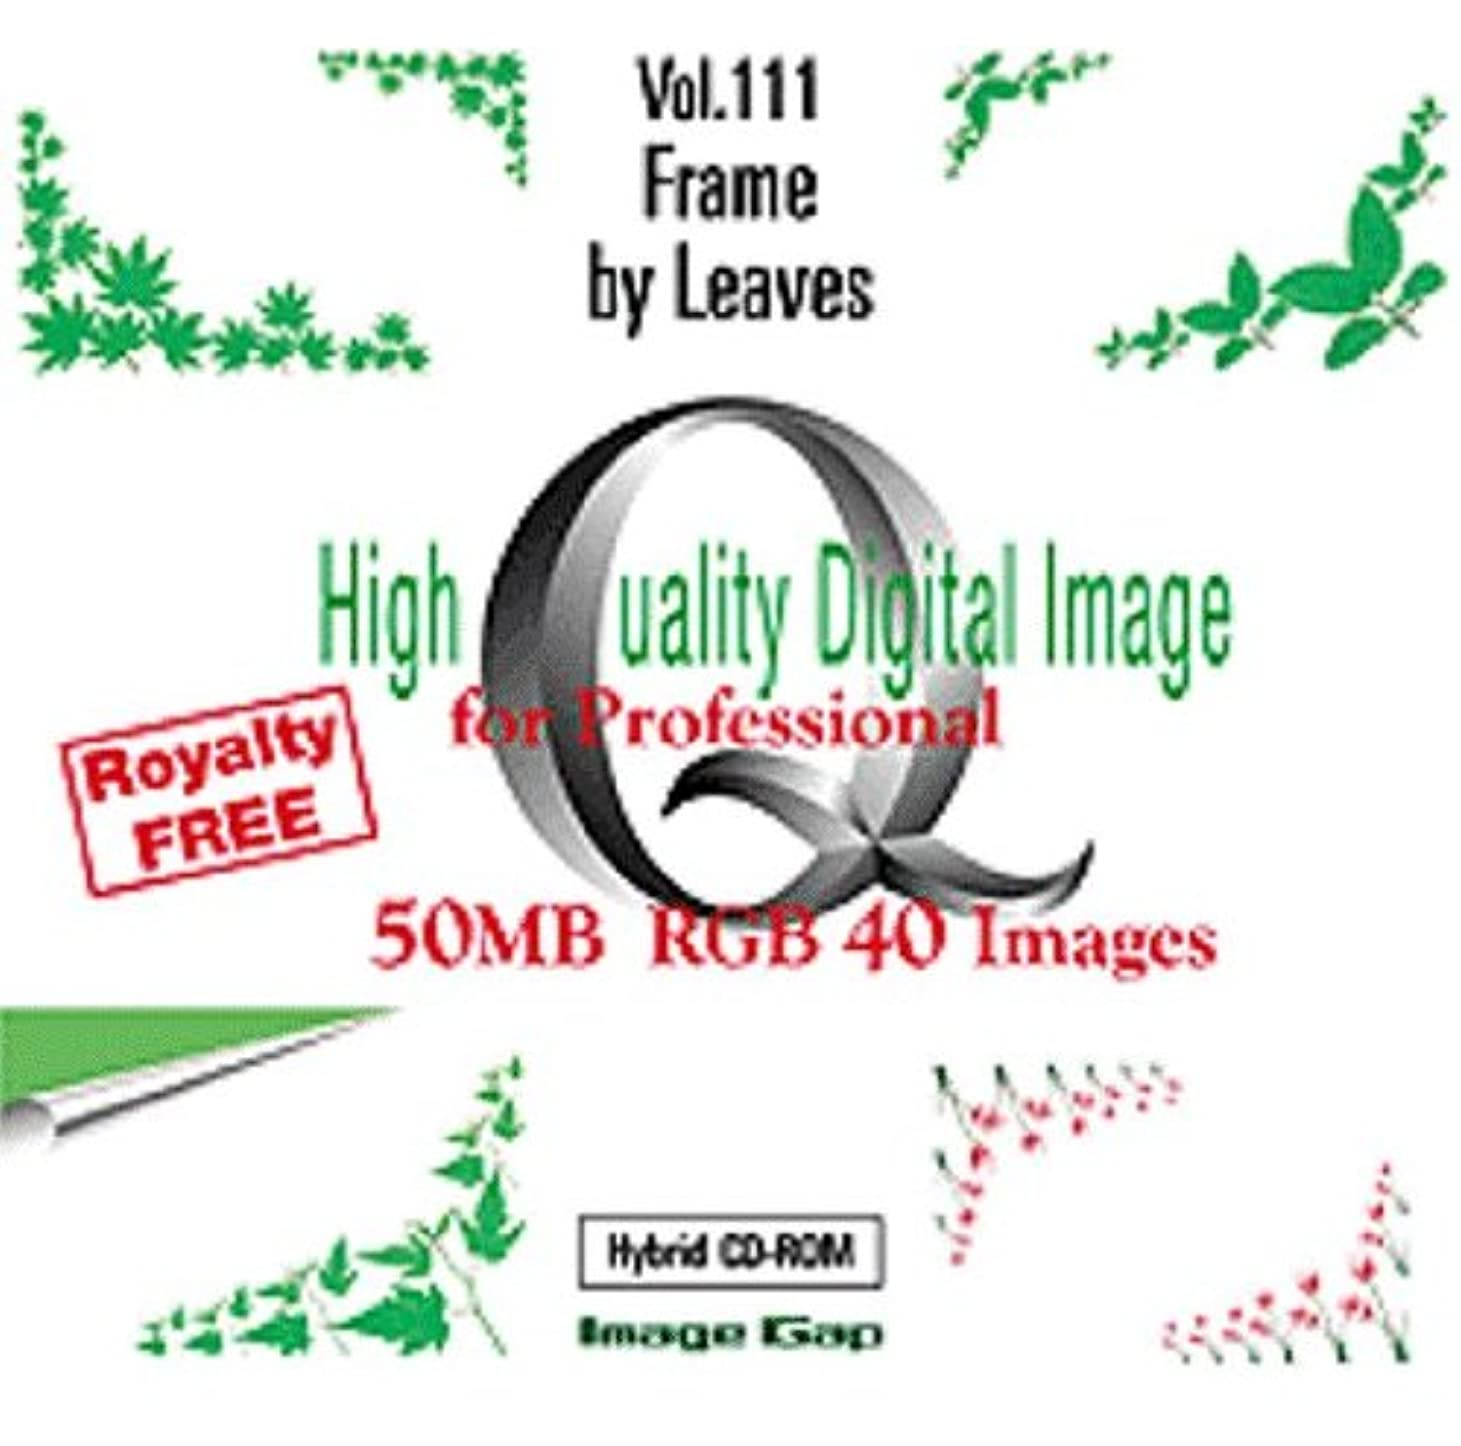 High Quality Digital Image for Professional Vol.111 Frame by Leaves